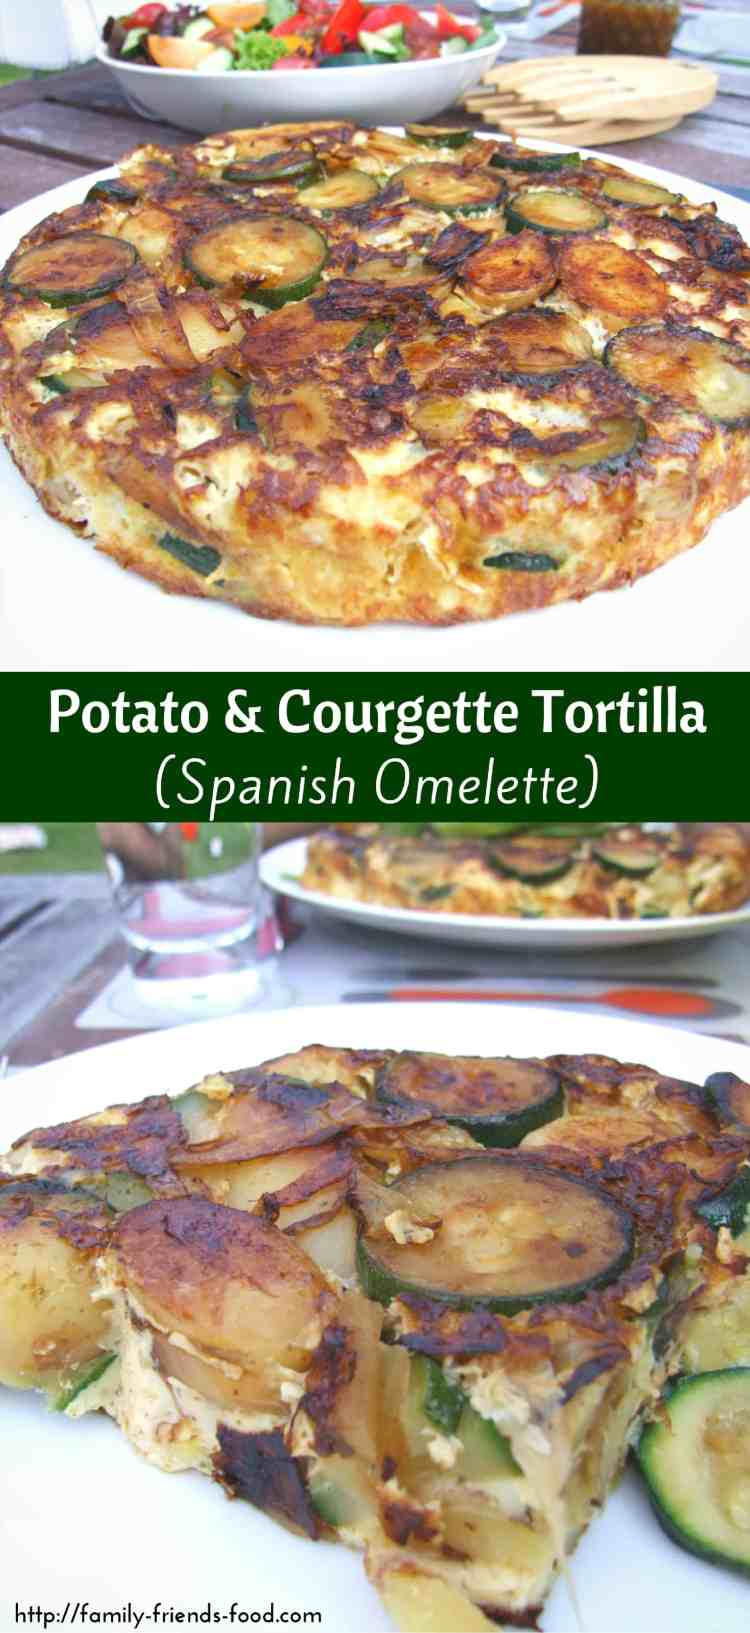 Delicious courgettes (zucchini) add extra flavour to this easy & delicious potato tortilla (Spanish omelette). A wonderful light lunch or simple supper.